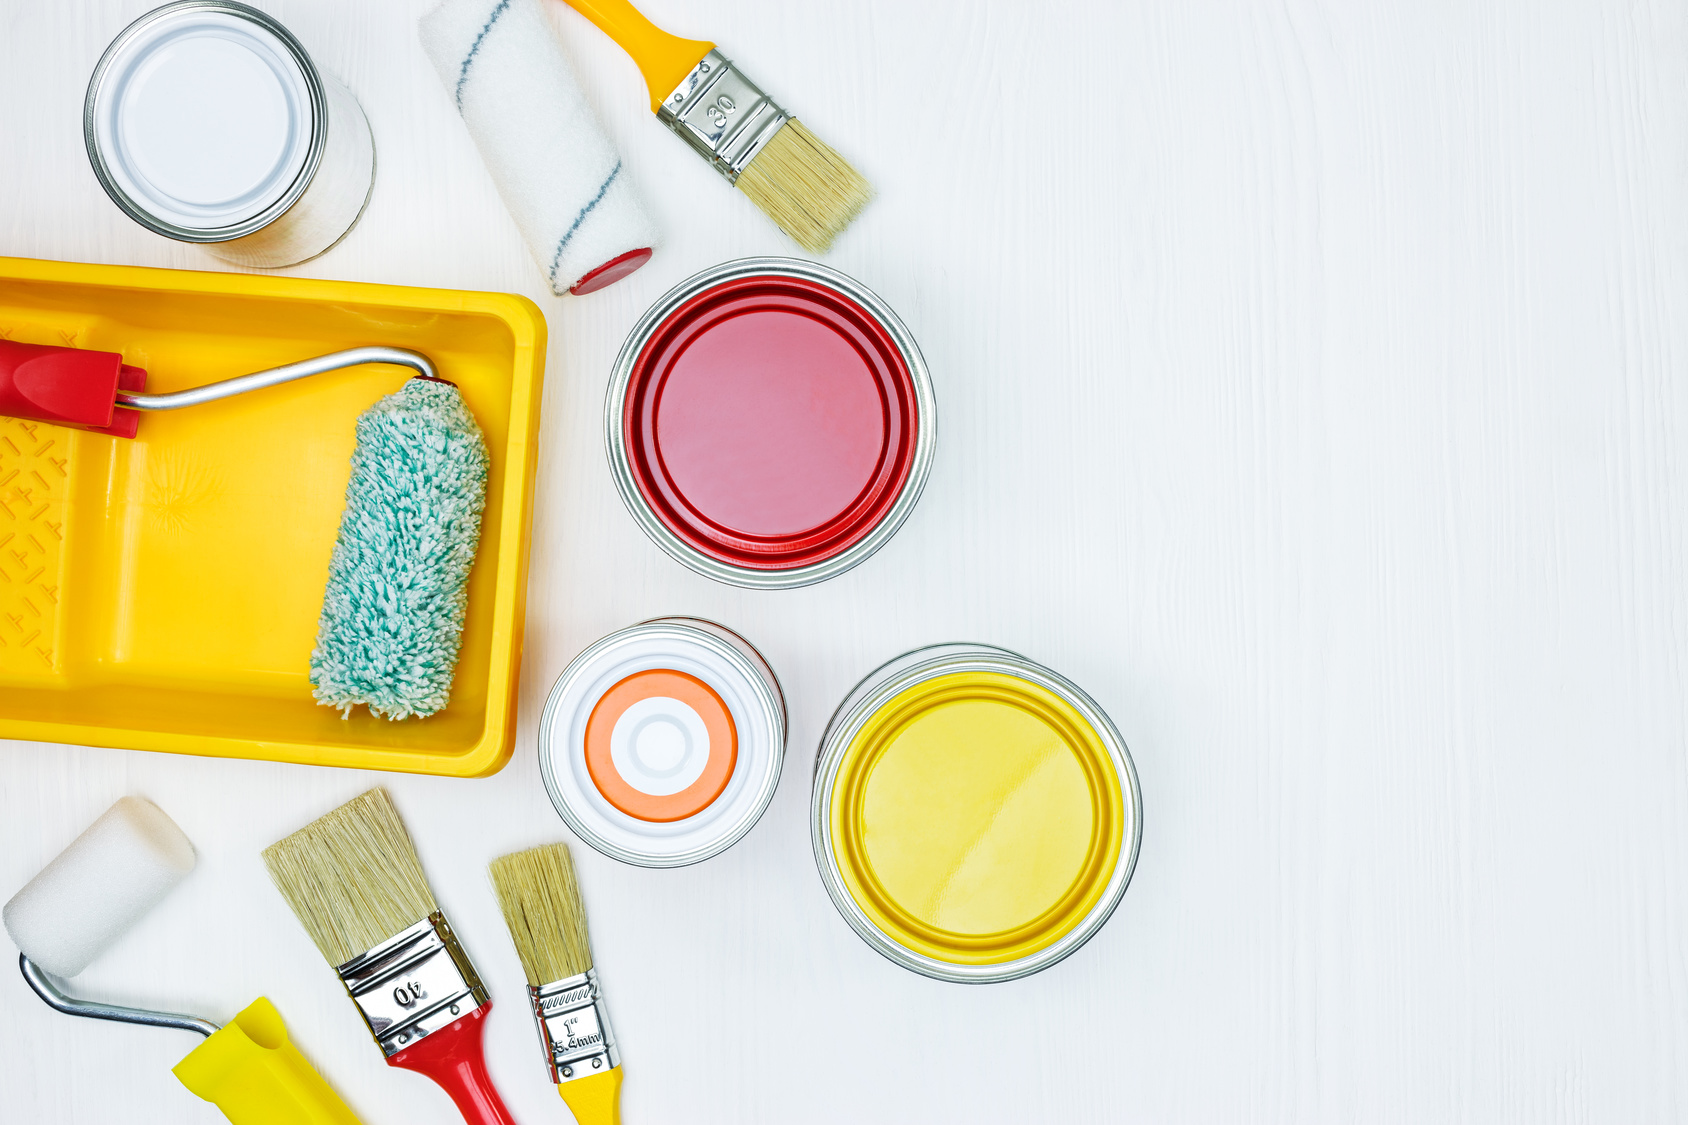 painting tools on white wooden background. paintbrushes, rollers, tray, cans with red, yellow, orange paint. flat view